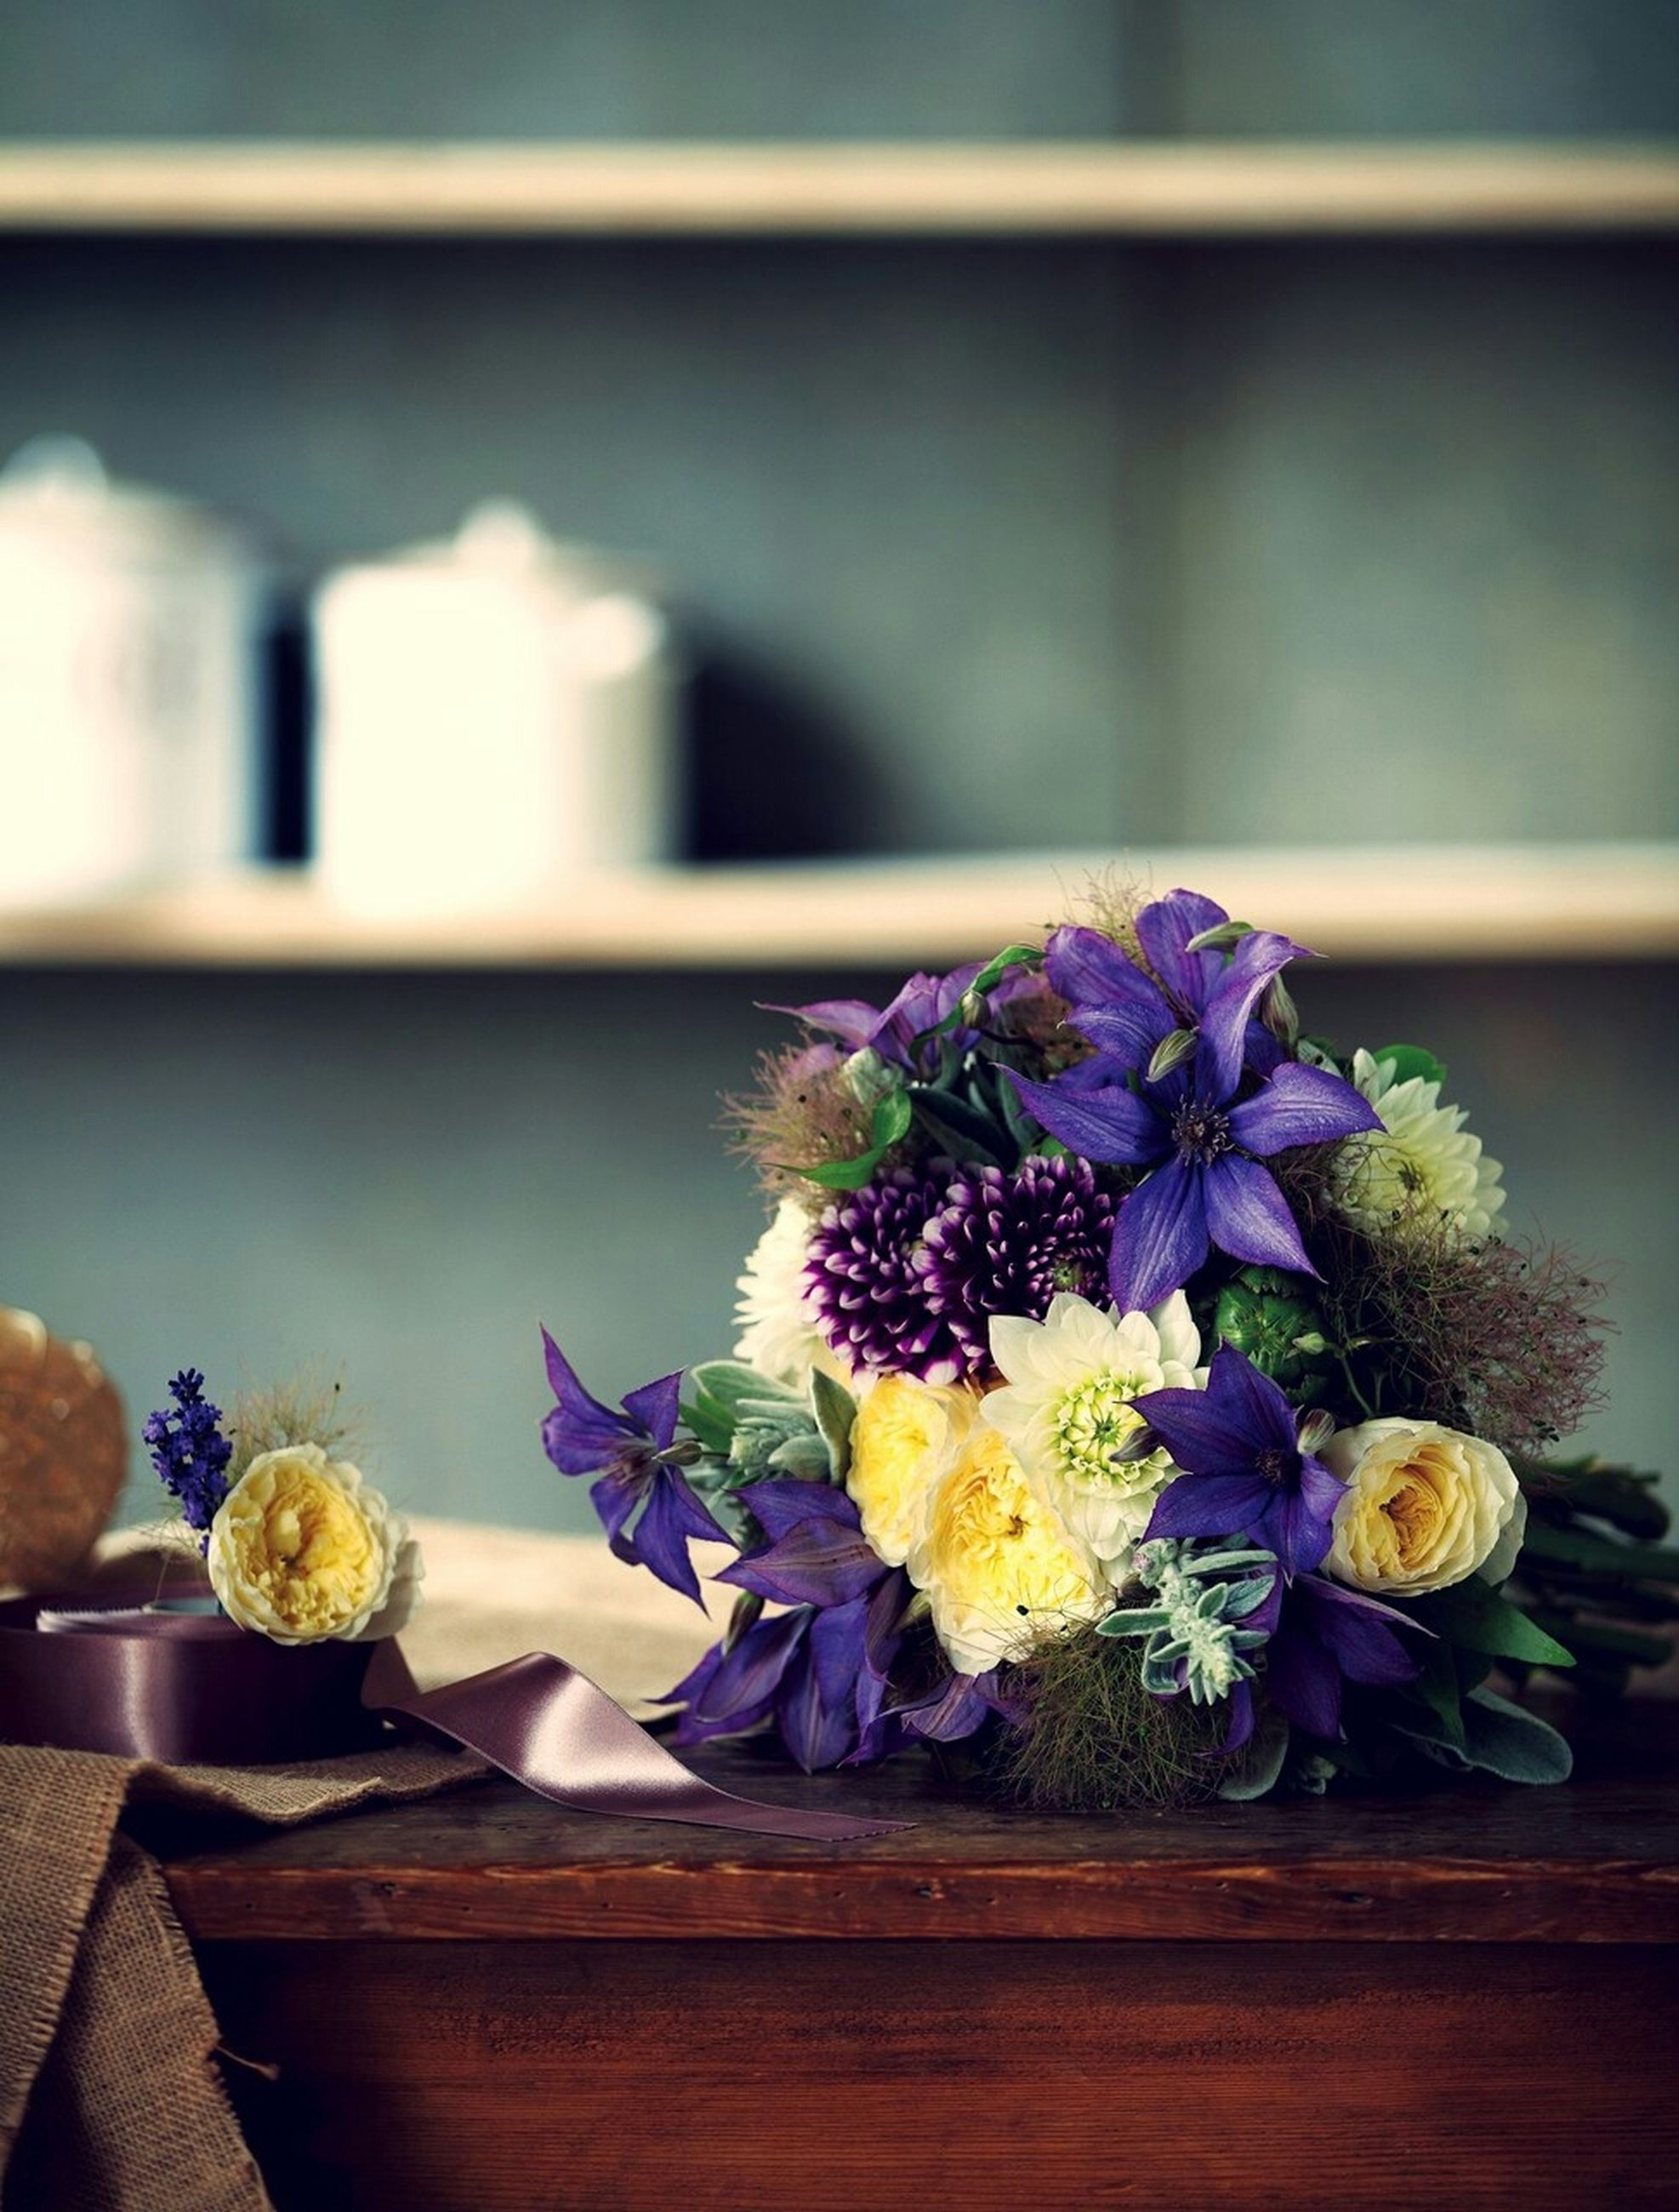 flower, indoors, freshness, fragility, petal, vase, table, potted plant, flower head, focus on foreground, wood - material, plant, close-up, beauty in nature, flower pot, bouquet, flower arrangement, bunch of flowers, nature, home interior